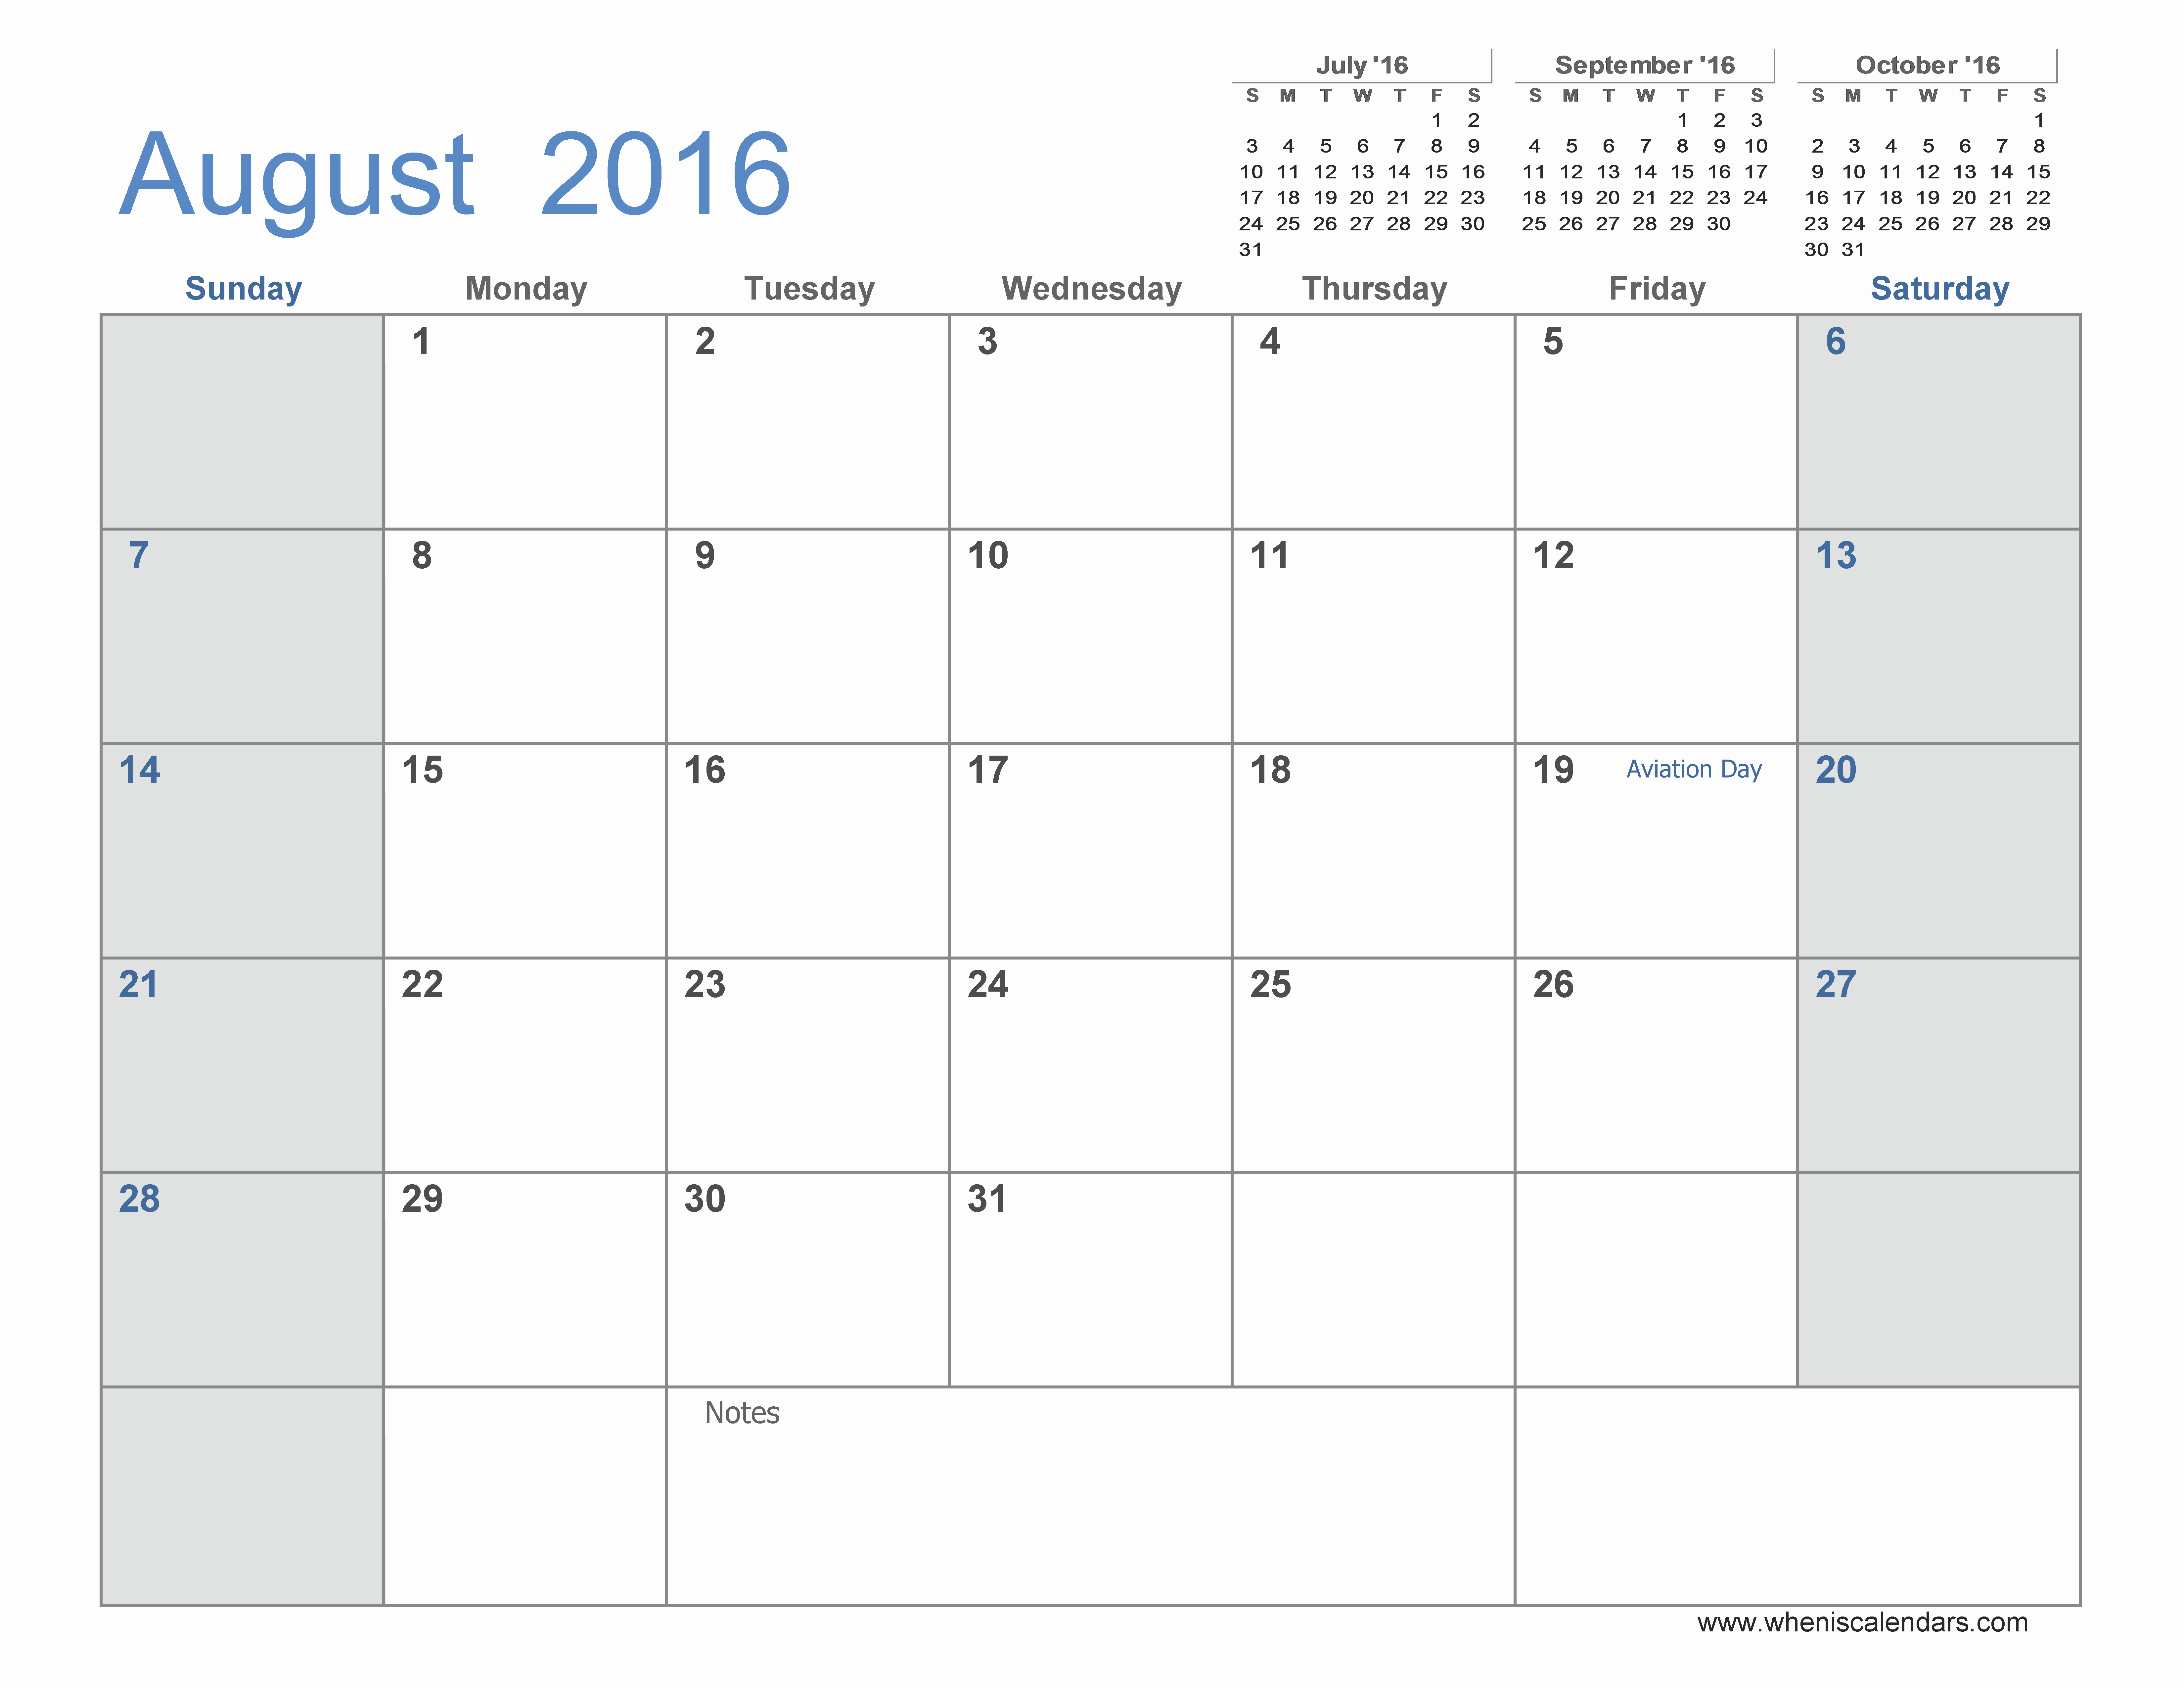 3 Month Calendar 2016 Template Awesome Calendar 2016 by Month to Print Aug 2016 Monthly Calendar